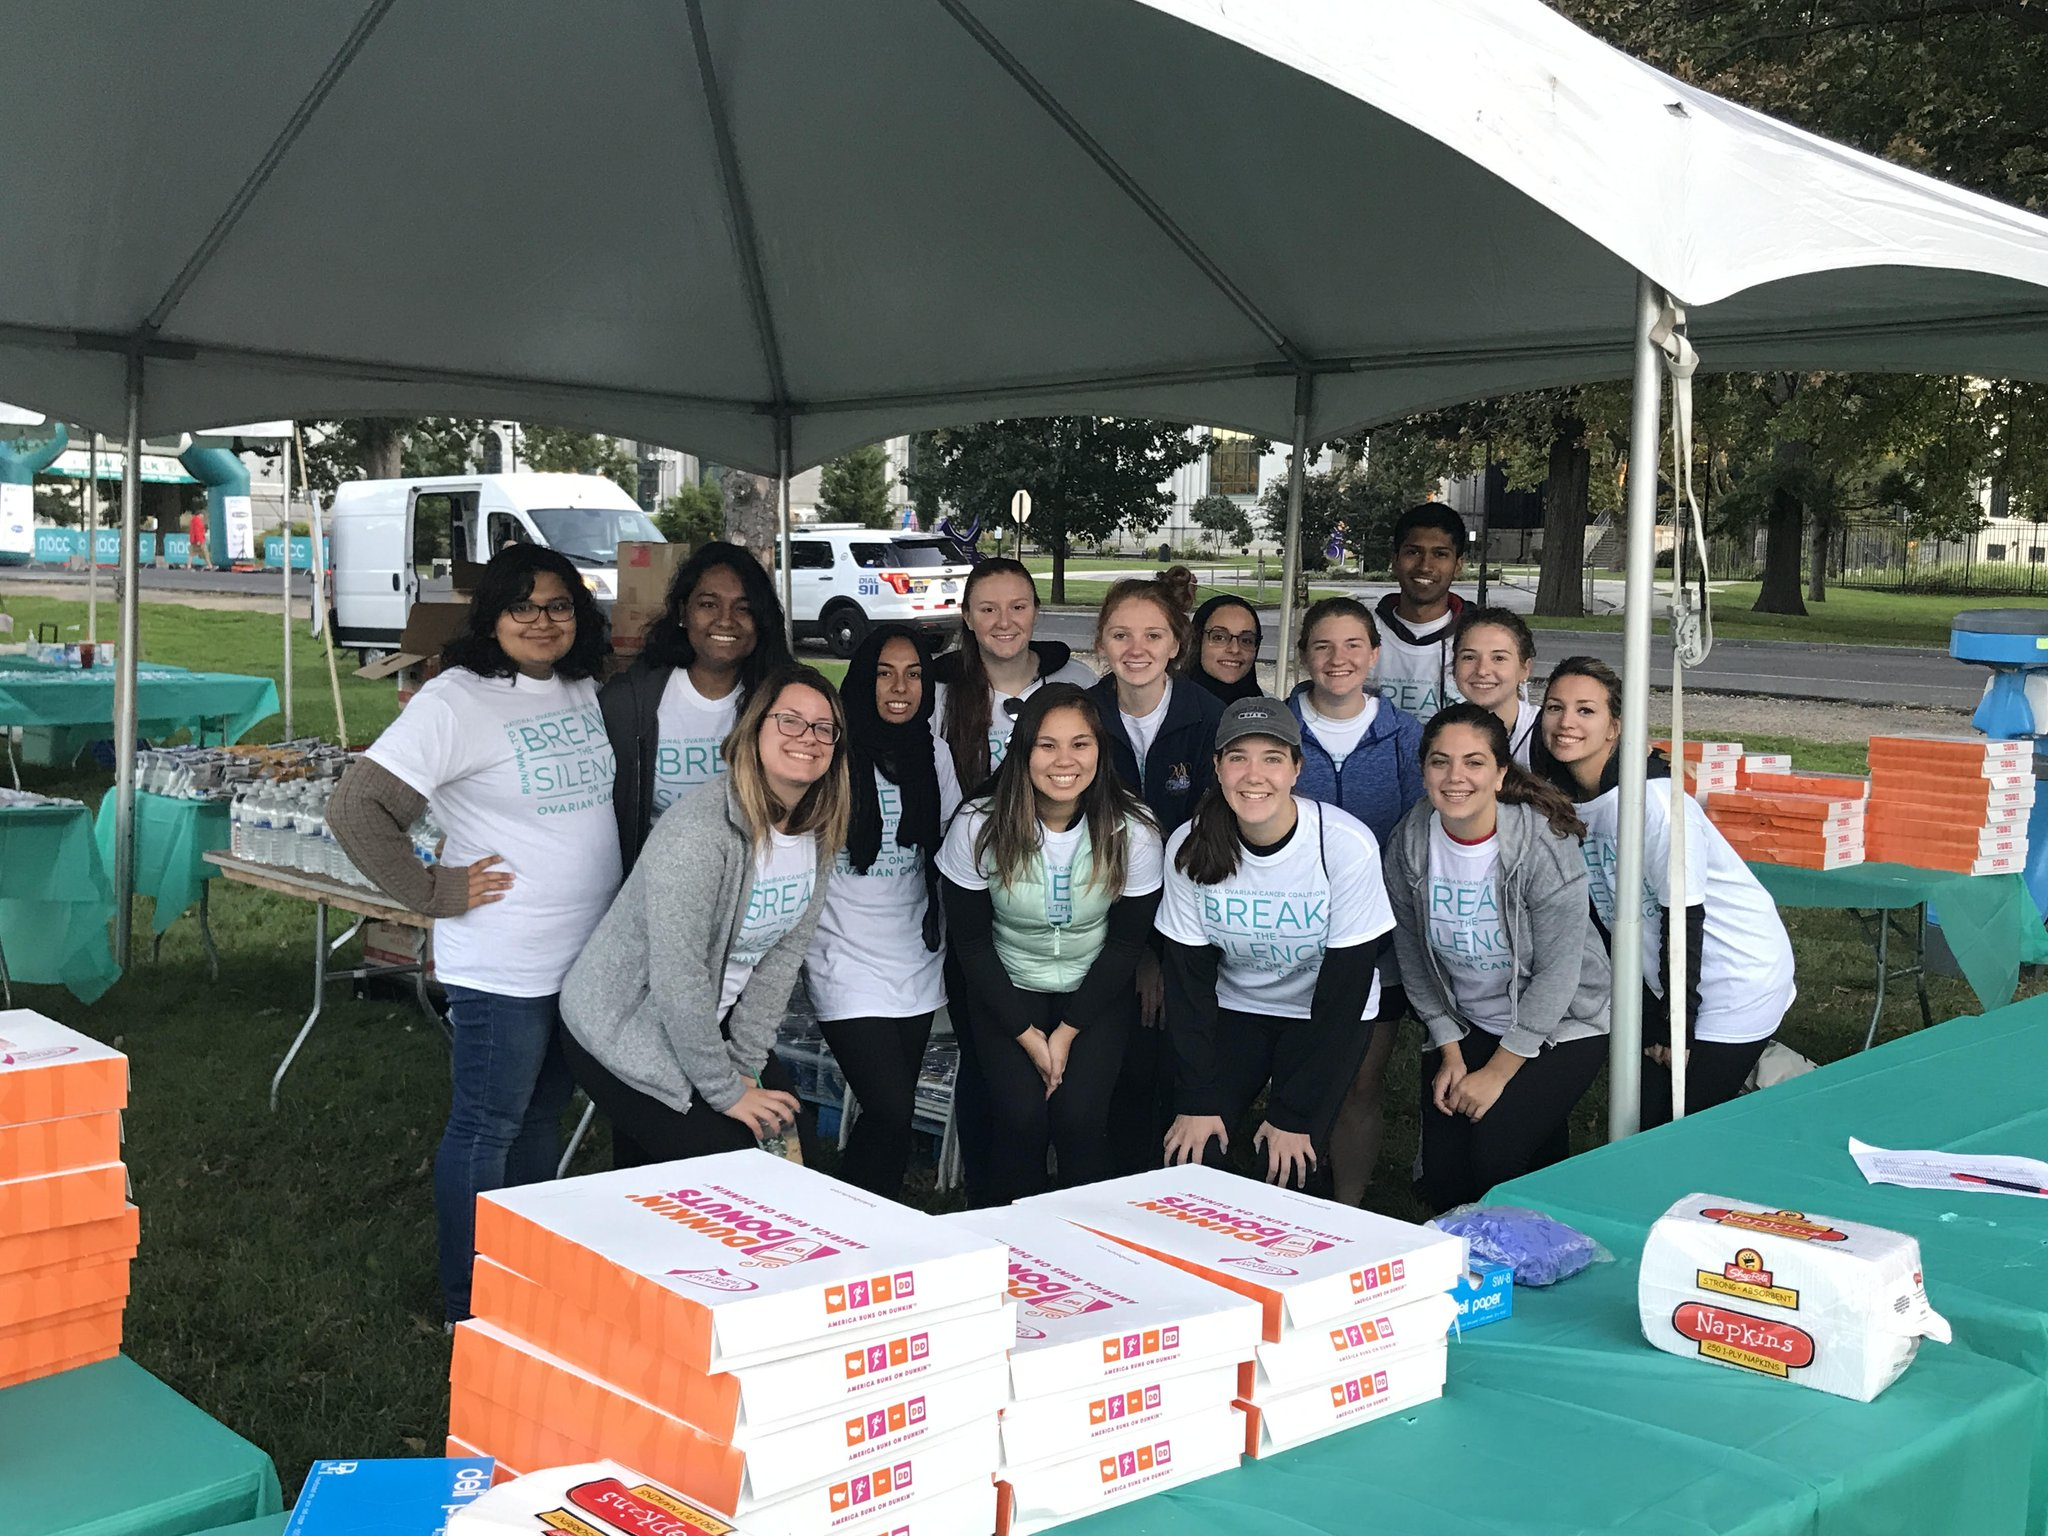 Pcom On Twitter Pcomproud The Ob Gyn And Oncology Clubs Recently Volunteered At The Nocc National S 19th Annual Run Walk Ovariancancer Noccrunwalk Https T Co Ht5nt2zp2h